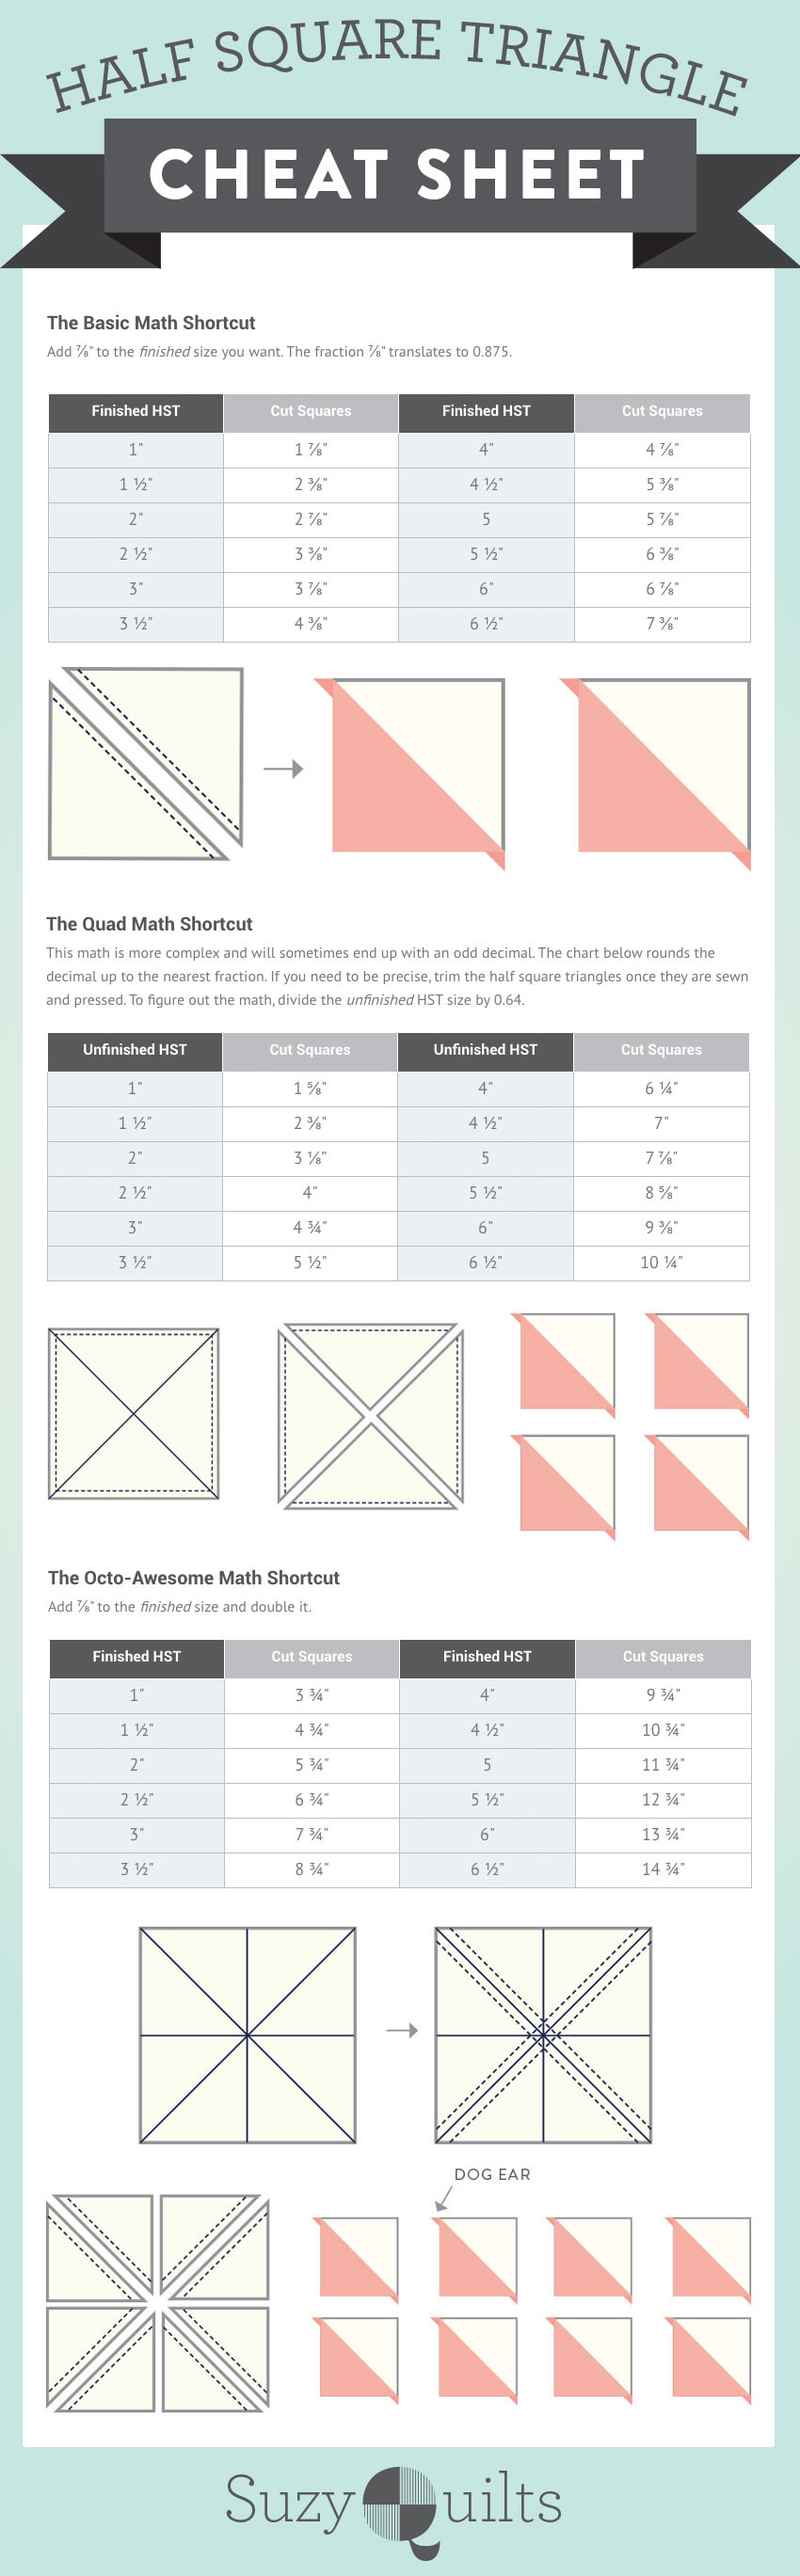 Easy half square triangles tutorial video suzy quilts half square triangle cheat sheet nvjuhfo Gallery